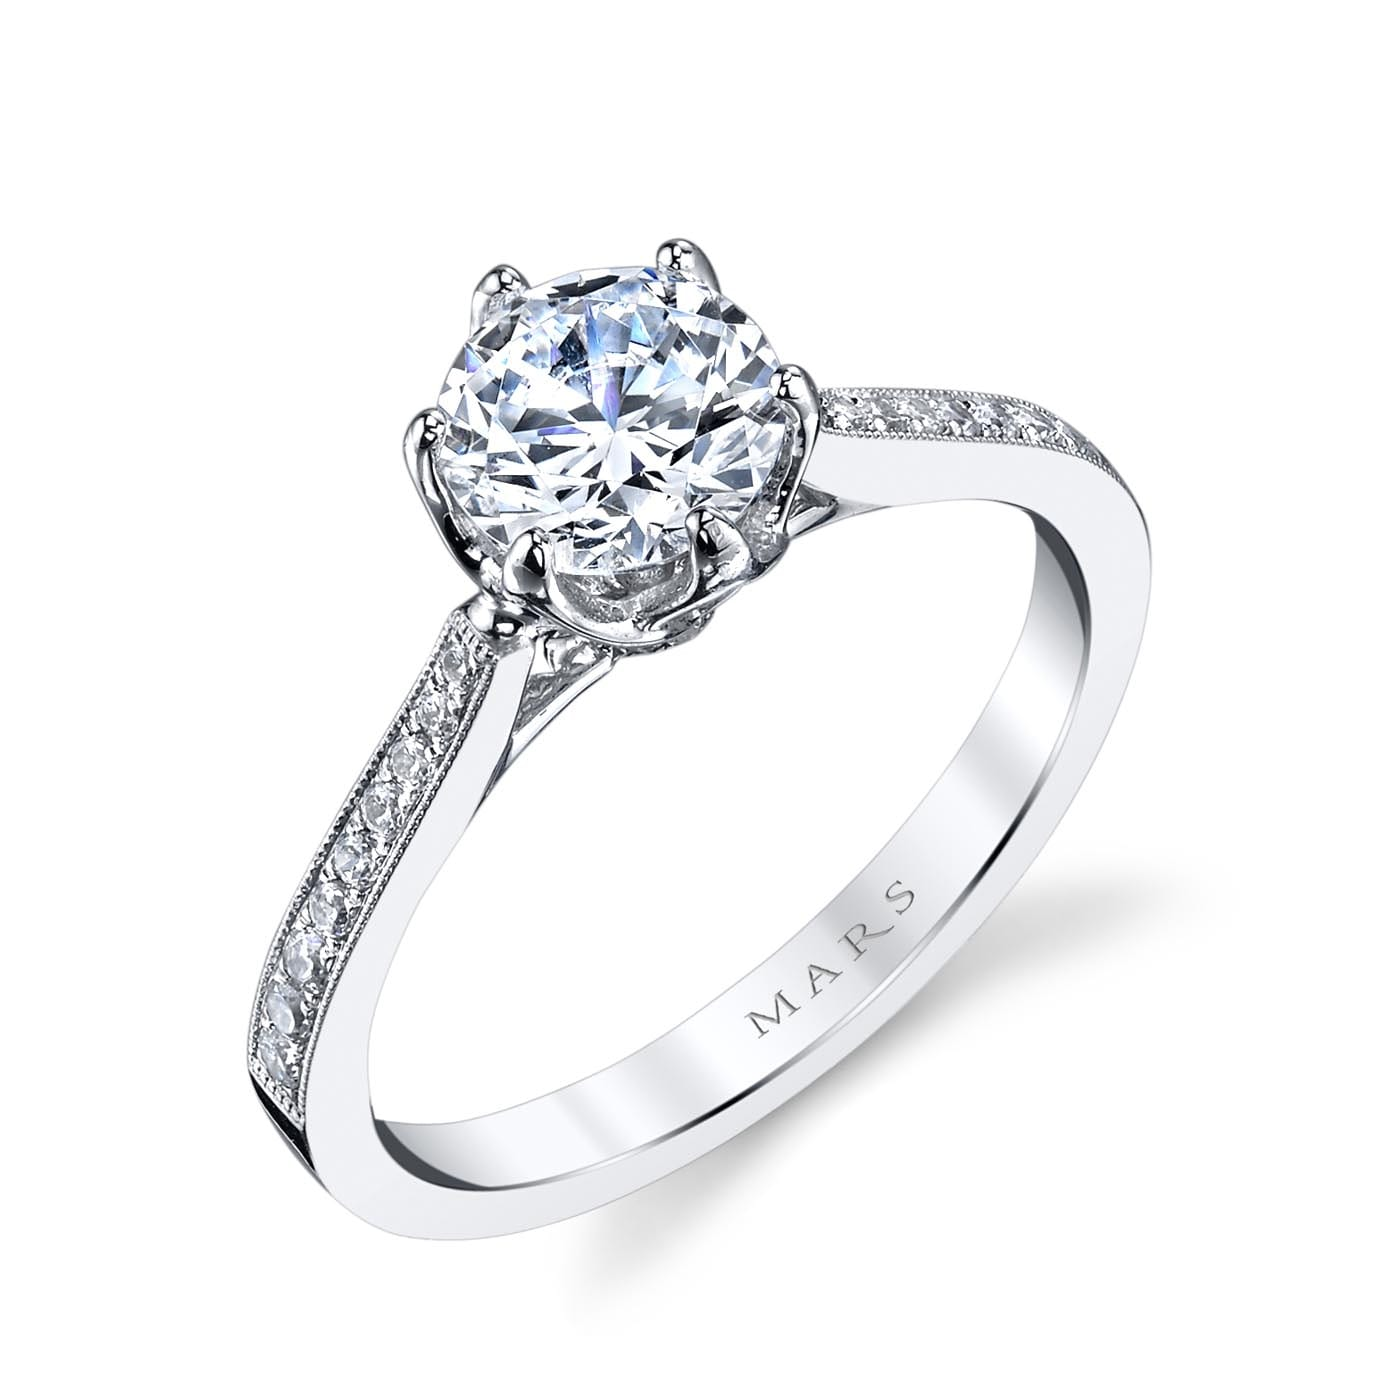 Classic Engagement RingStyle #: MARS 25283